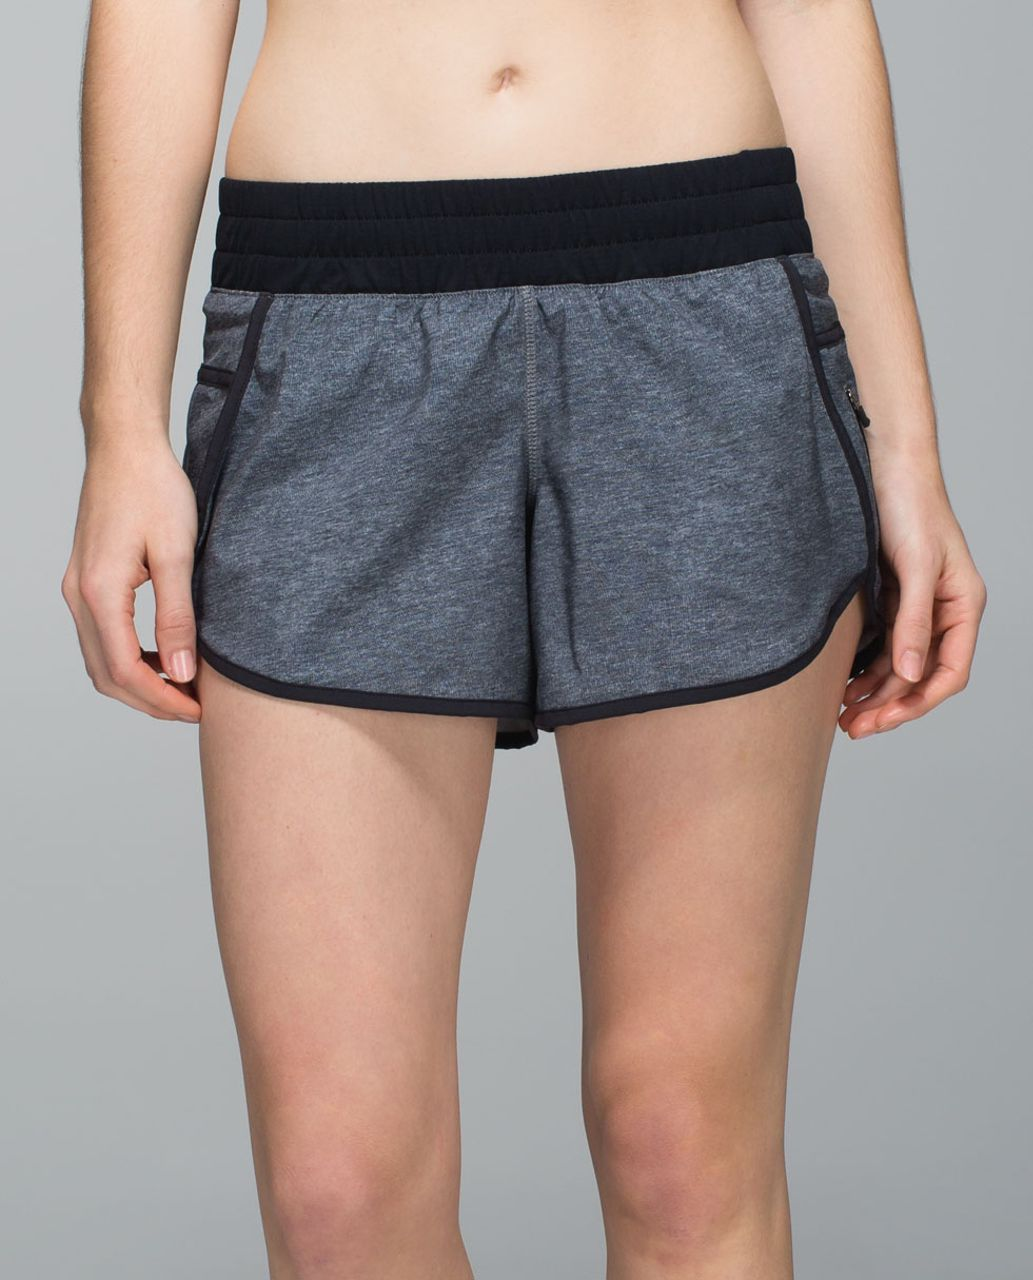 Lululemon Tracker Short III *4-way Stretch - Heathered Texture Printed Grey Deep Coal / Black